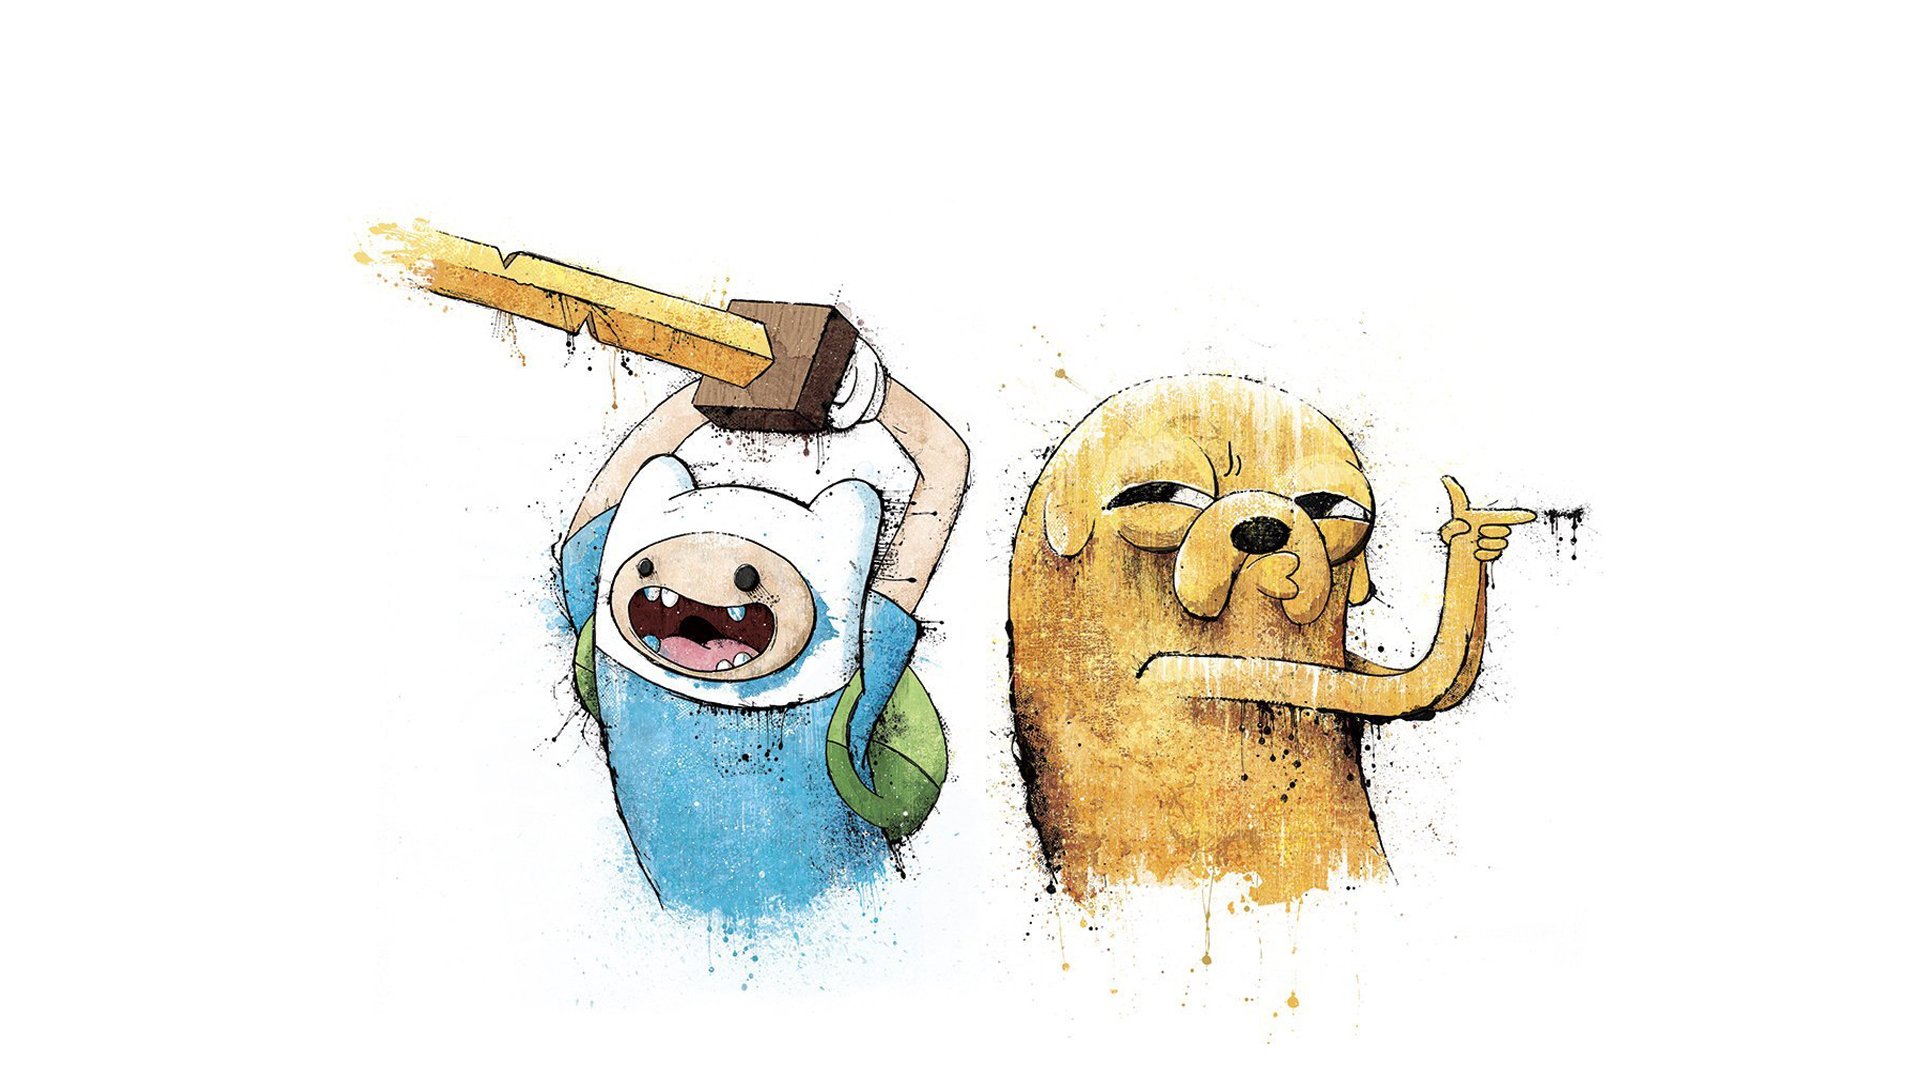 Download Wallpaper 1920x1080 Adventure time Finn and jake 1920x1080